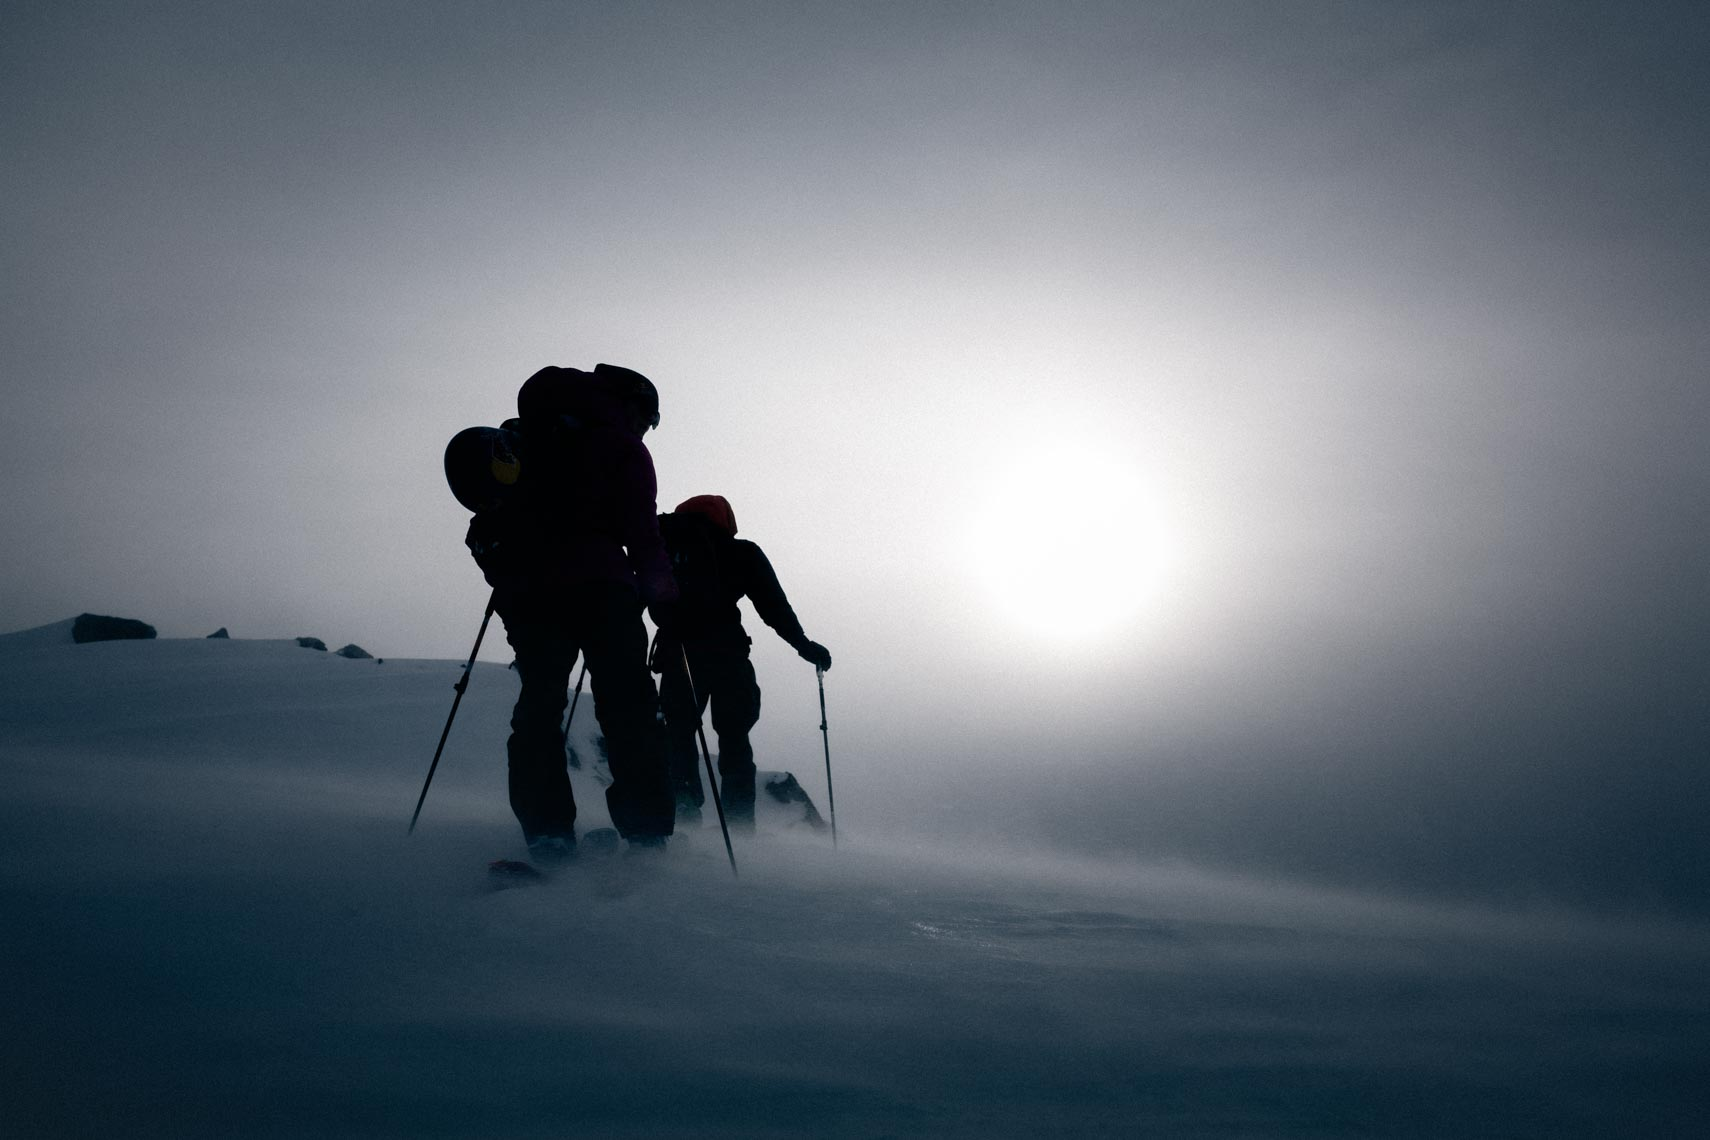 Silhouetted ski touring pro skiers photographed in Whistler BC